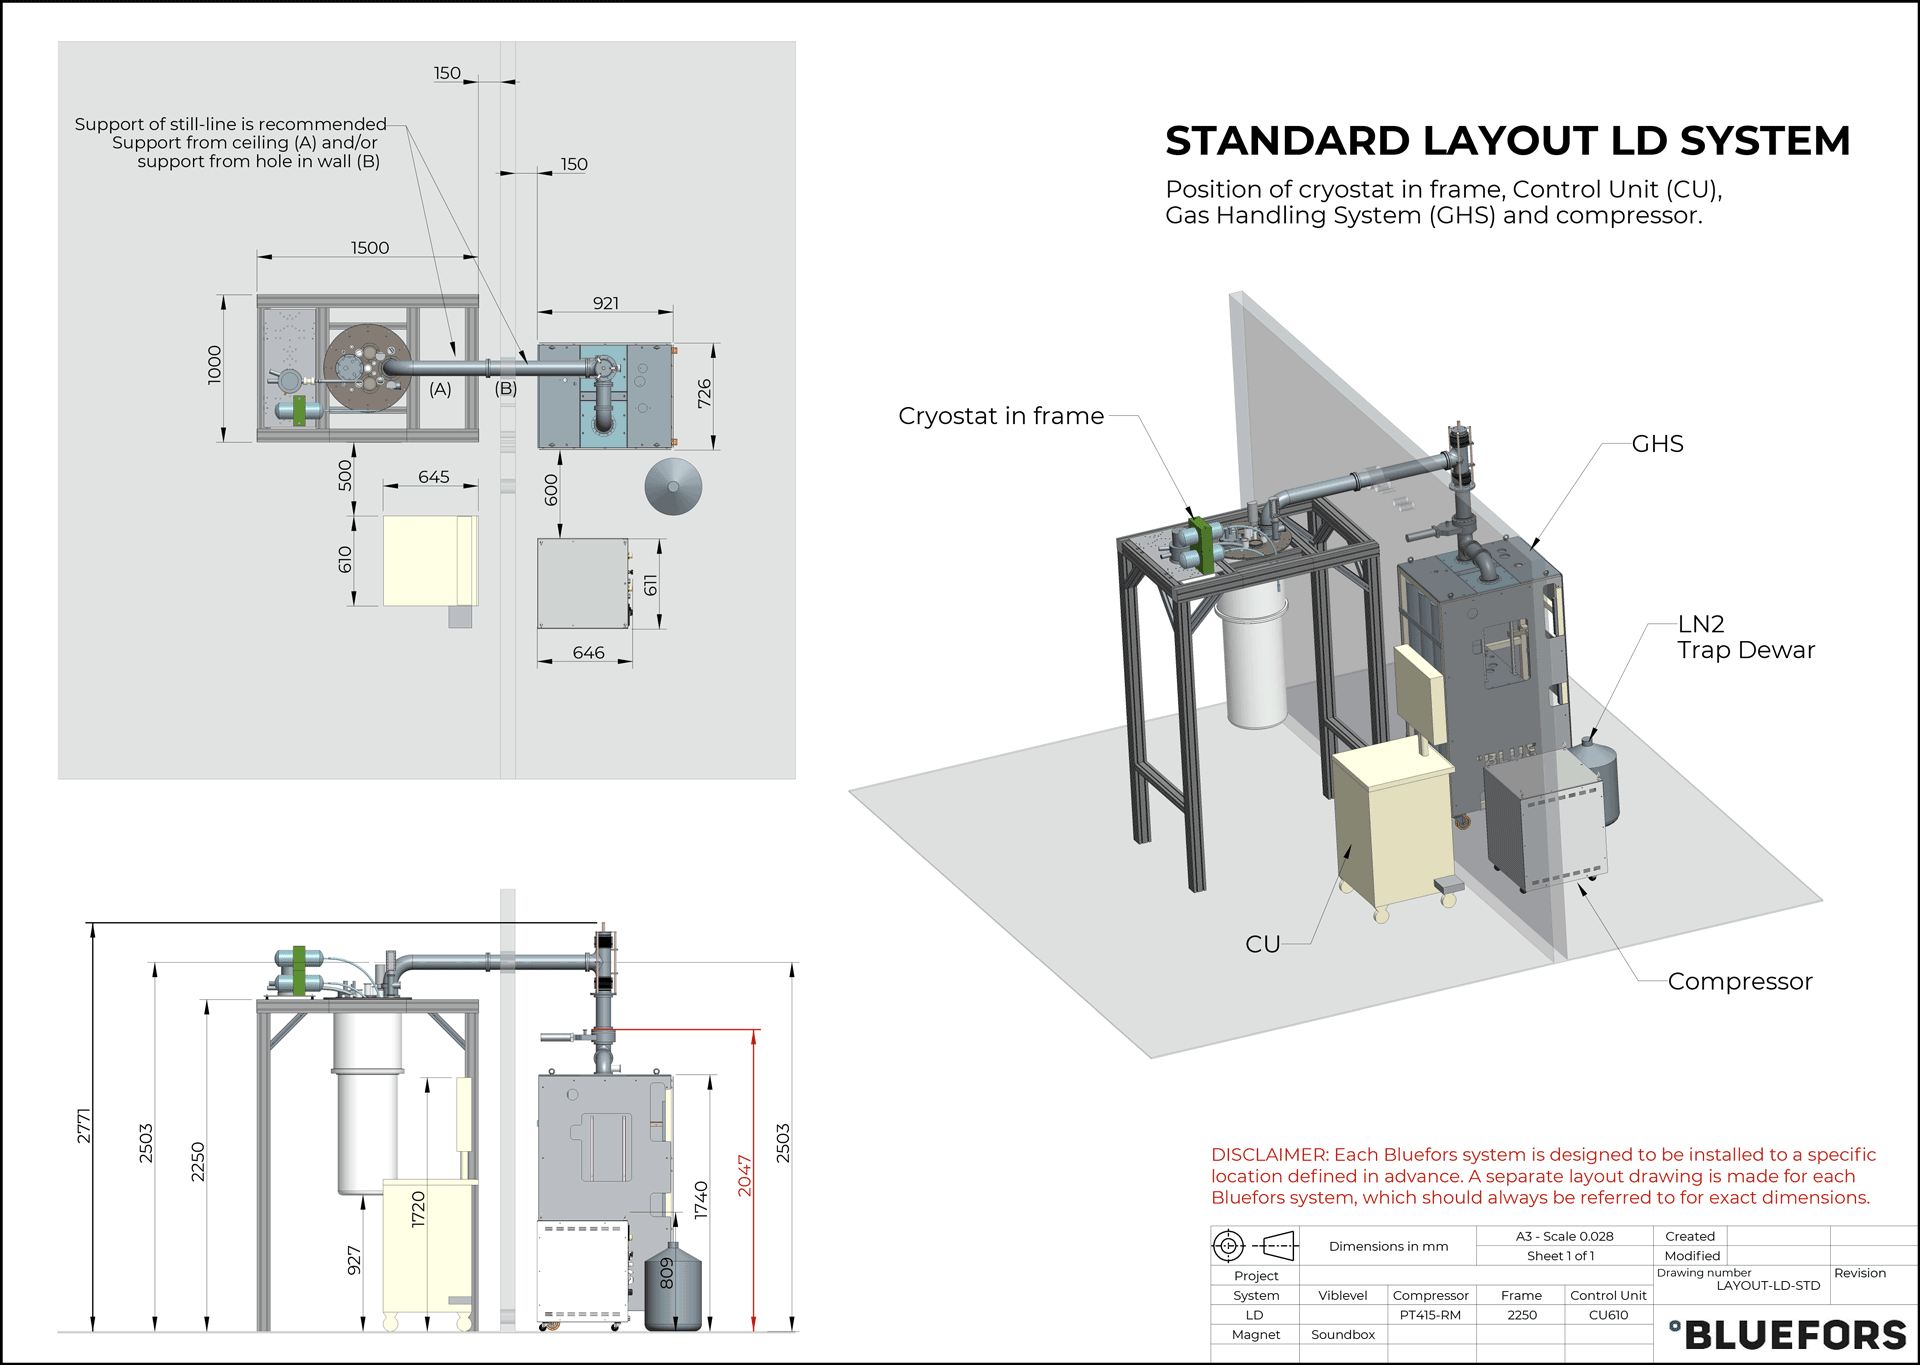 Bluefors dilution refrigerator LAYOUT LD STANDARD 2019